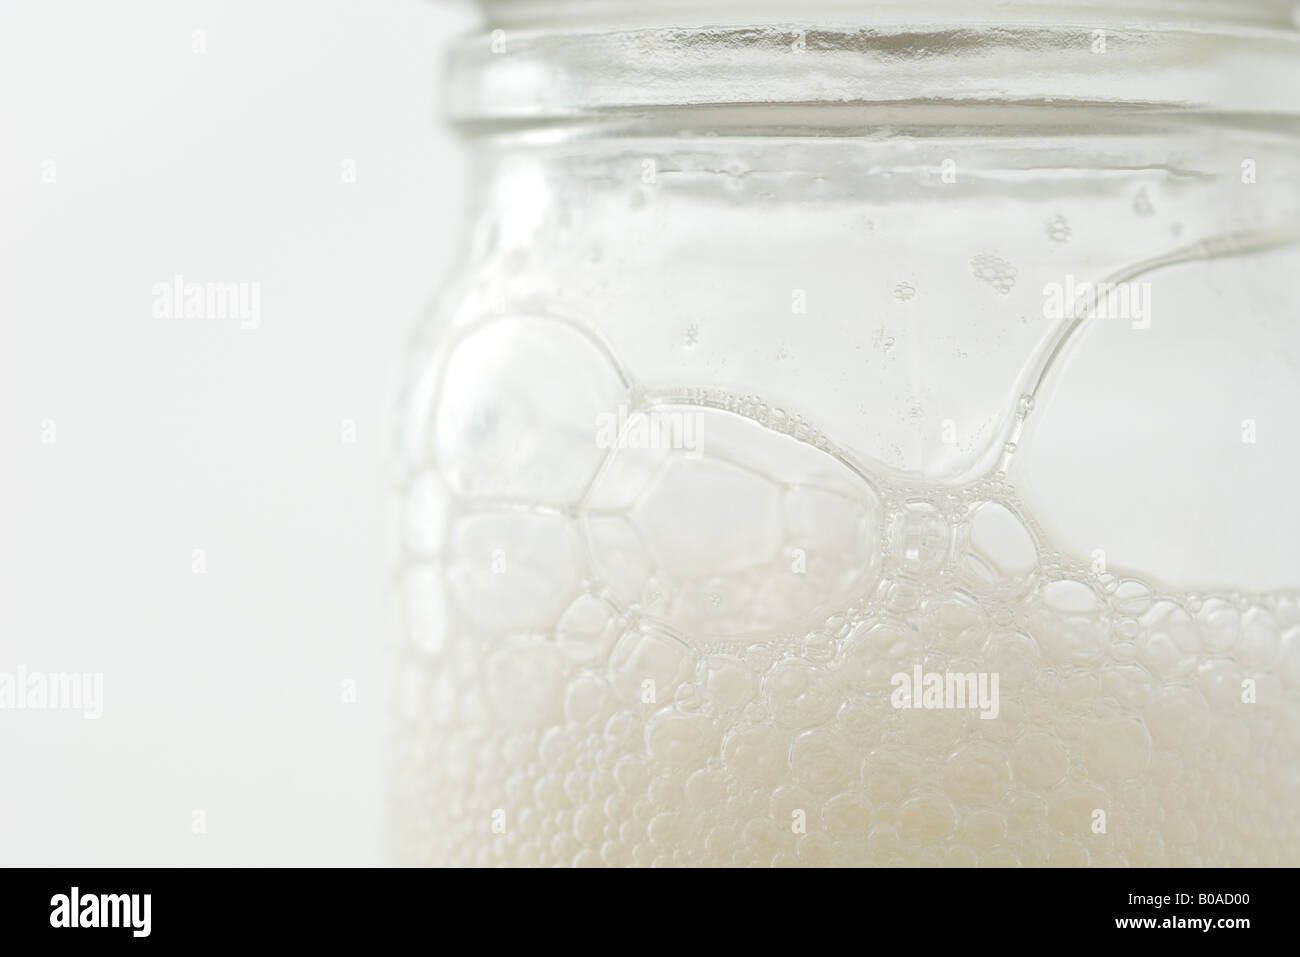 Glass jar with soap suds, extreme close-up - Stock Image